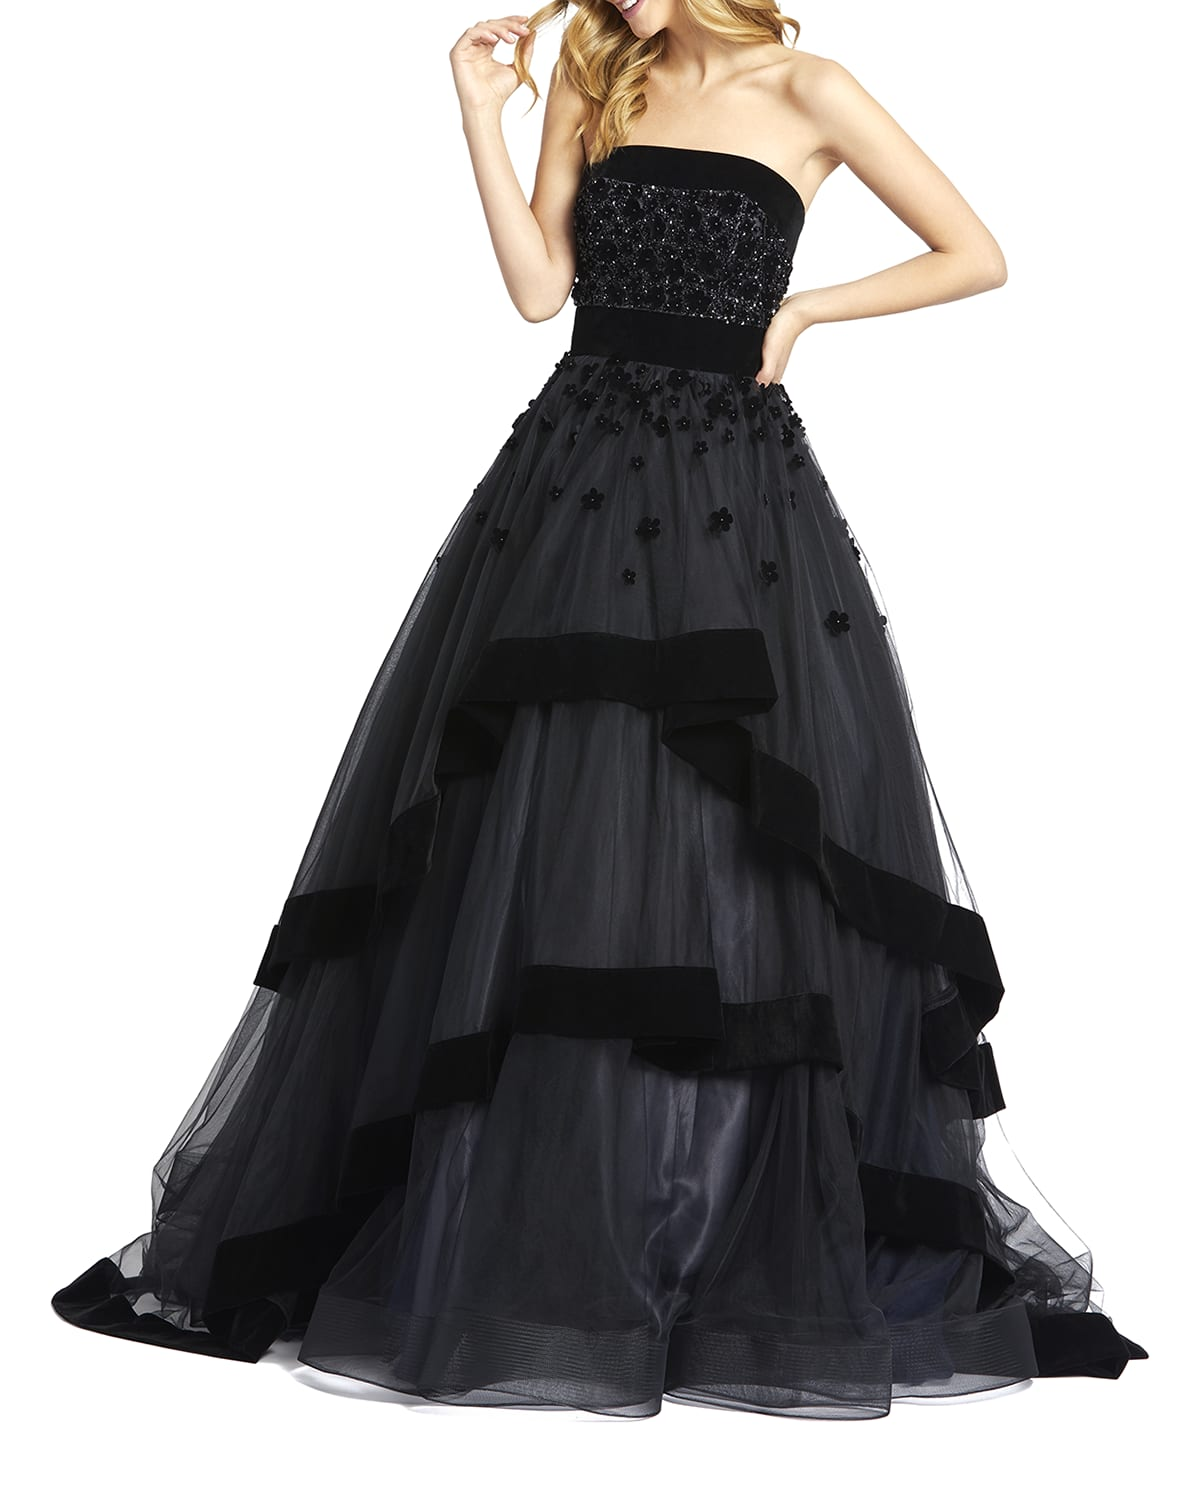 Strapless Tiered Gown with Velvet Trim & Floral Appliques